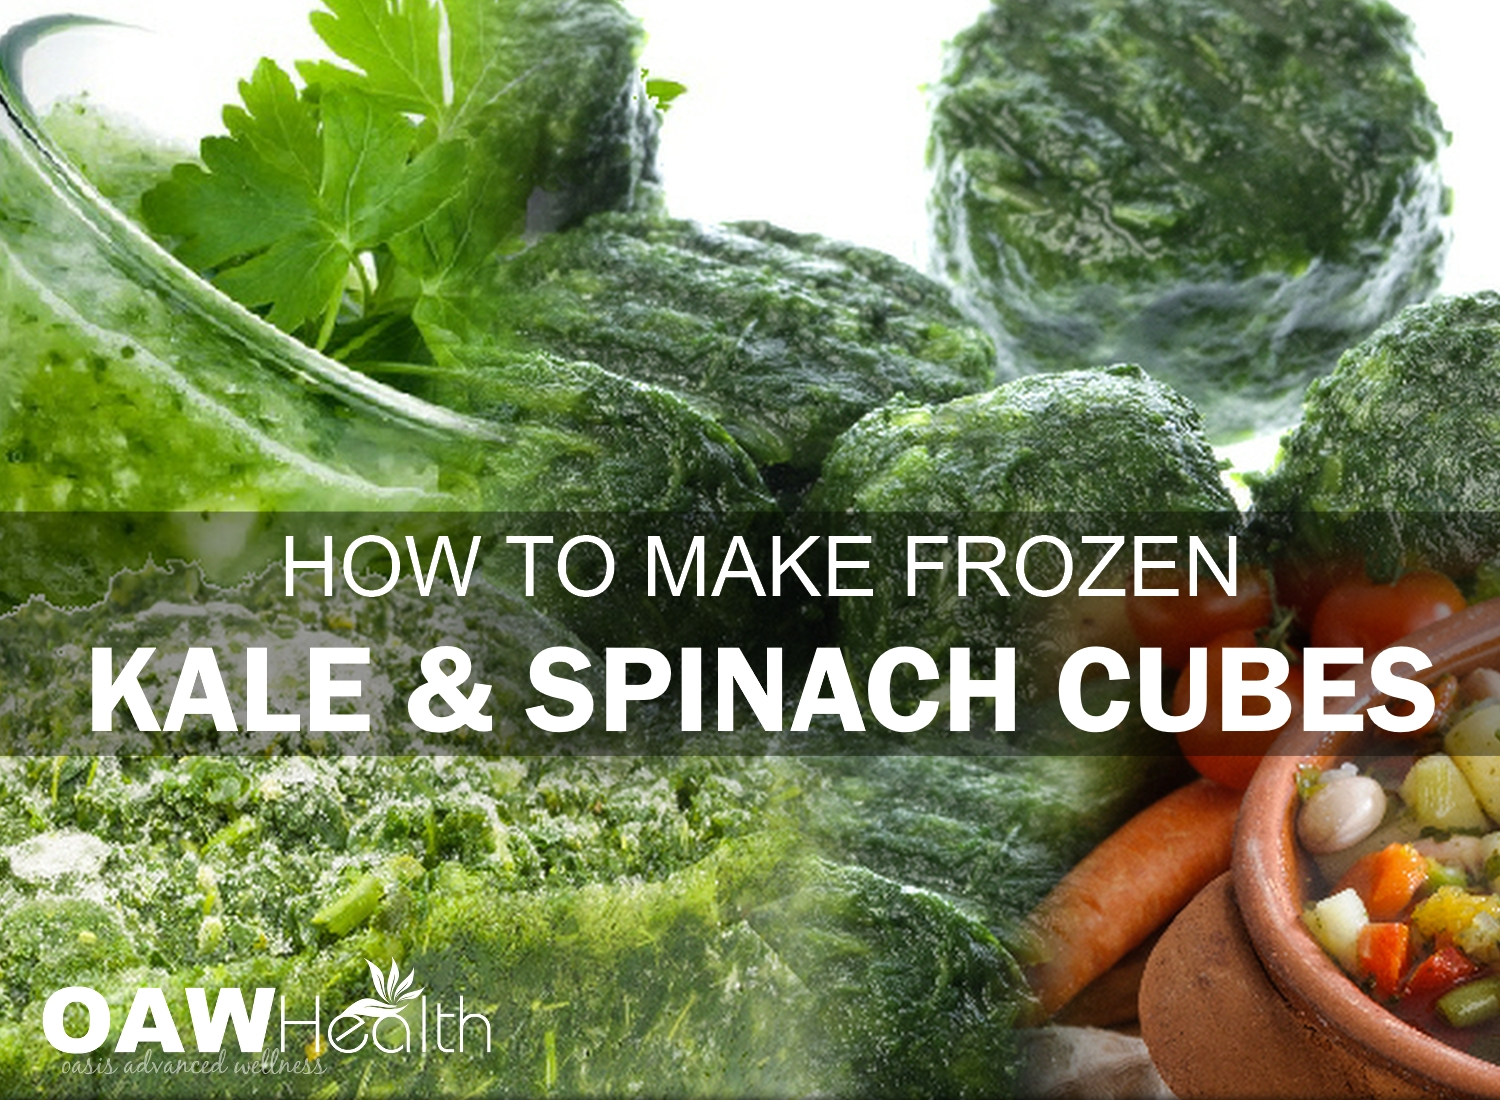 How to Make Frozen Kale and Spinach Cubes